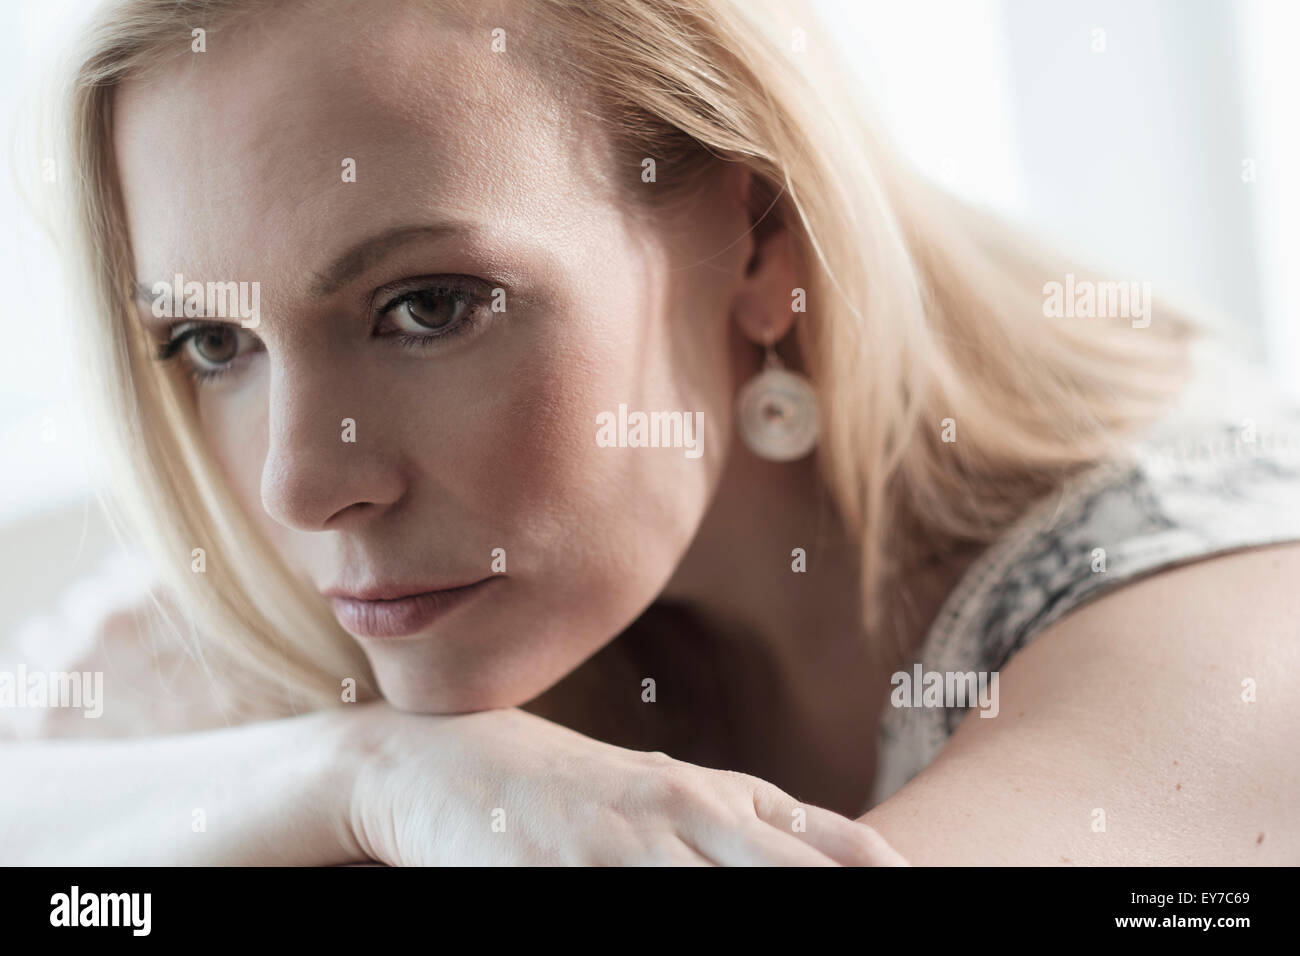 Pensive young woman lying on bed Photo Stock